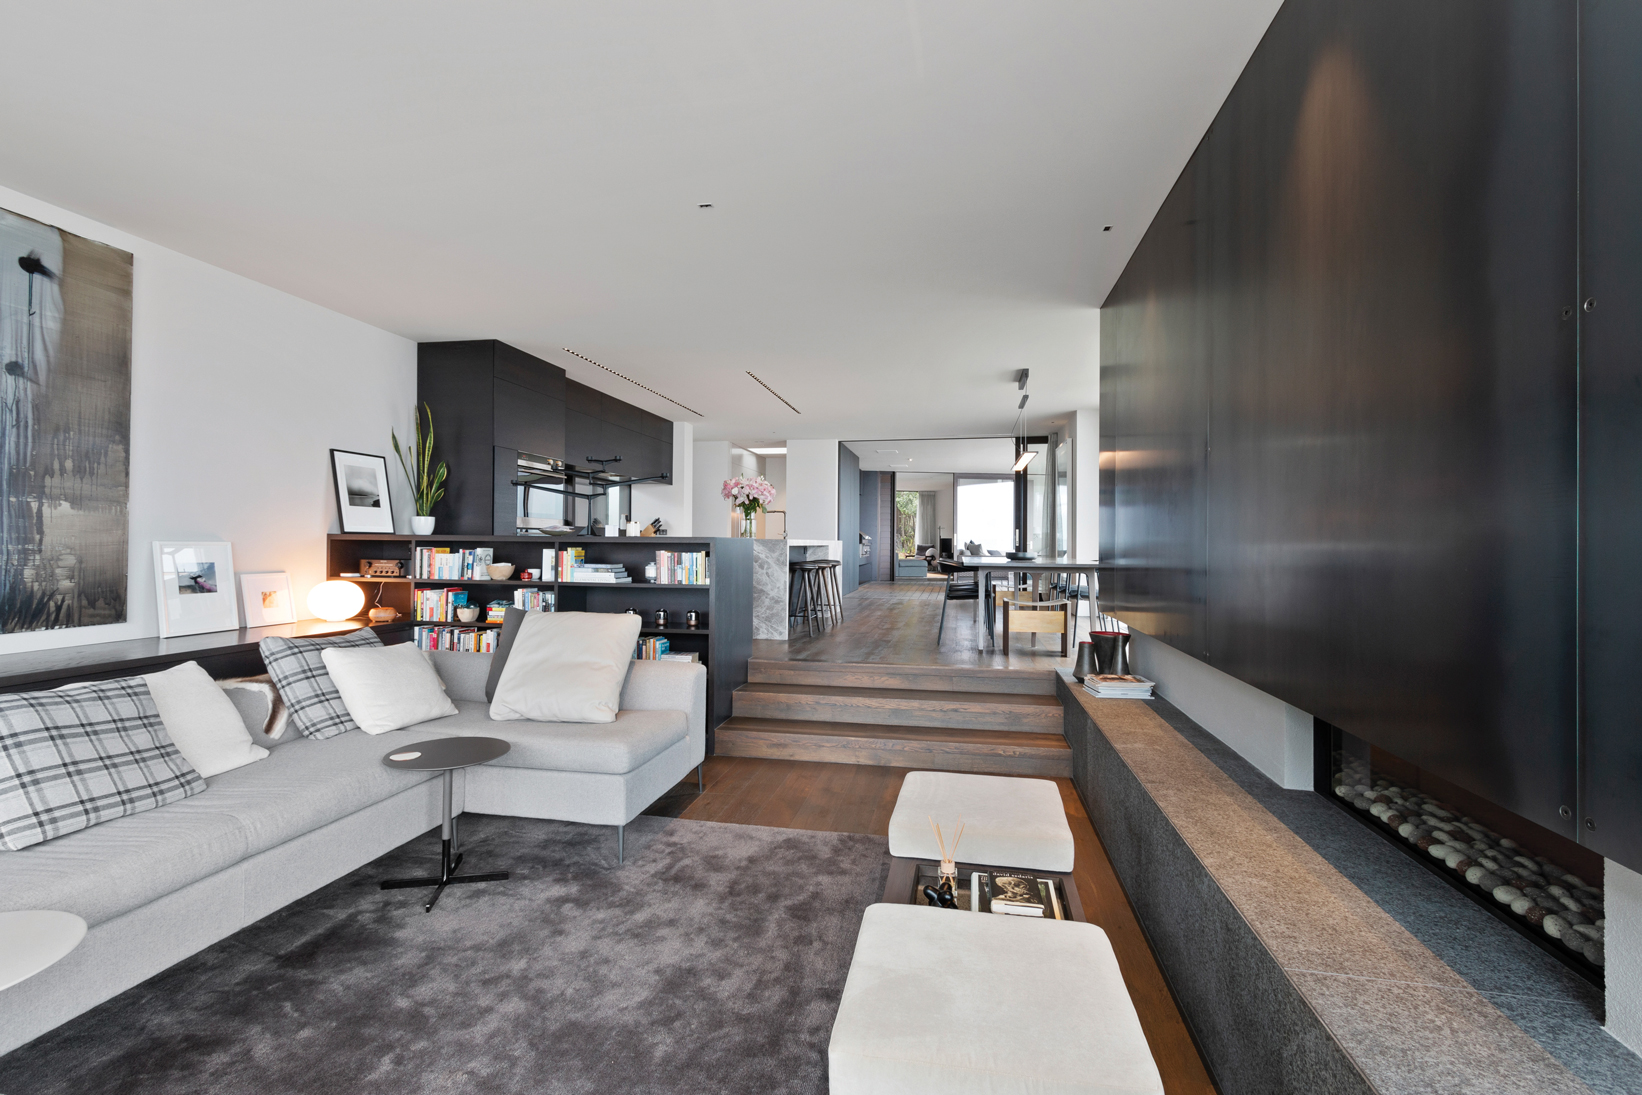 Interior:  A restful colour palette of greys and browns creates an elegant cohesive interior.